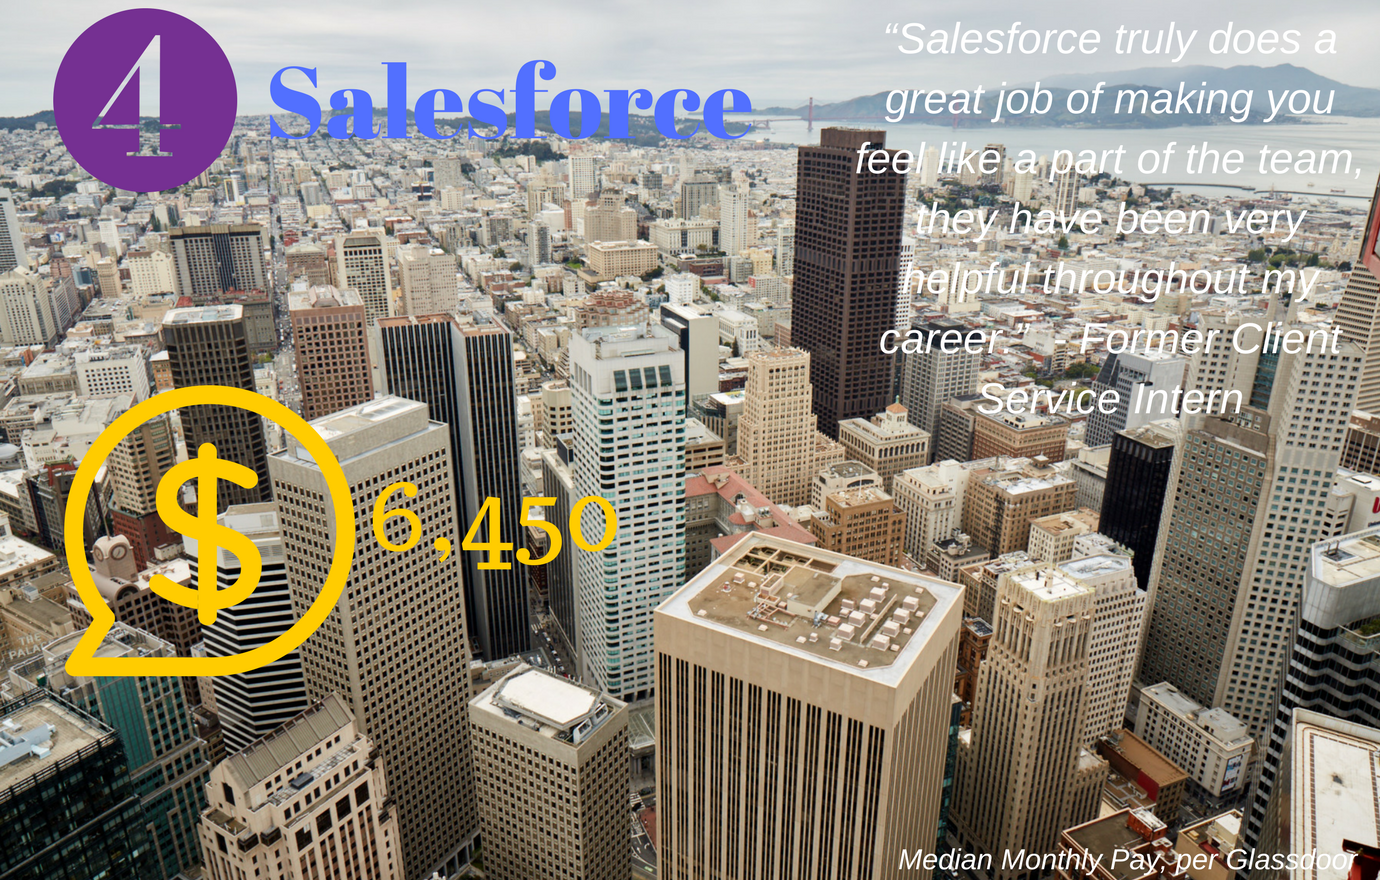 #4. Salesforce. Median Monthly Pay: $6,450. Salesforce interns and new graduates work on real projects that affect how the business runs, giving them the opportunity to make a tangible impact on the future of the company. (Image: Salesforce)